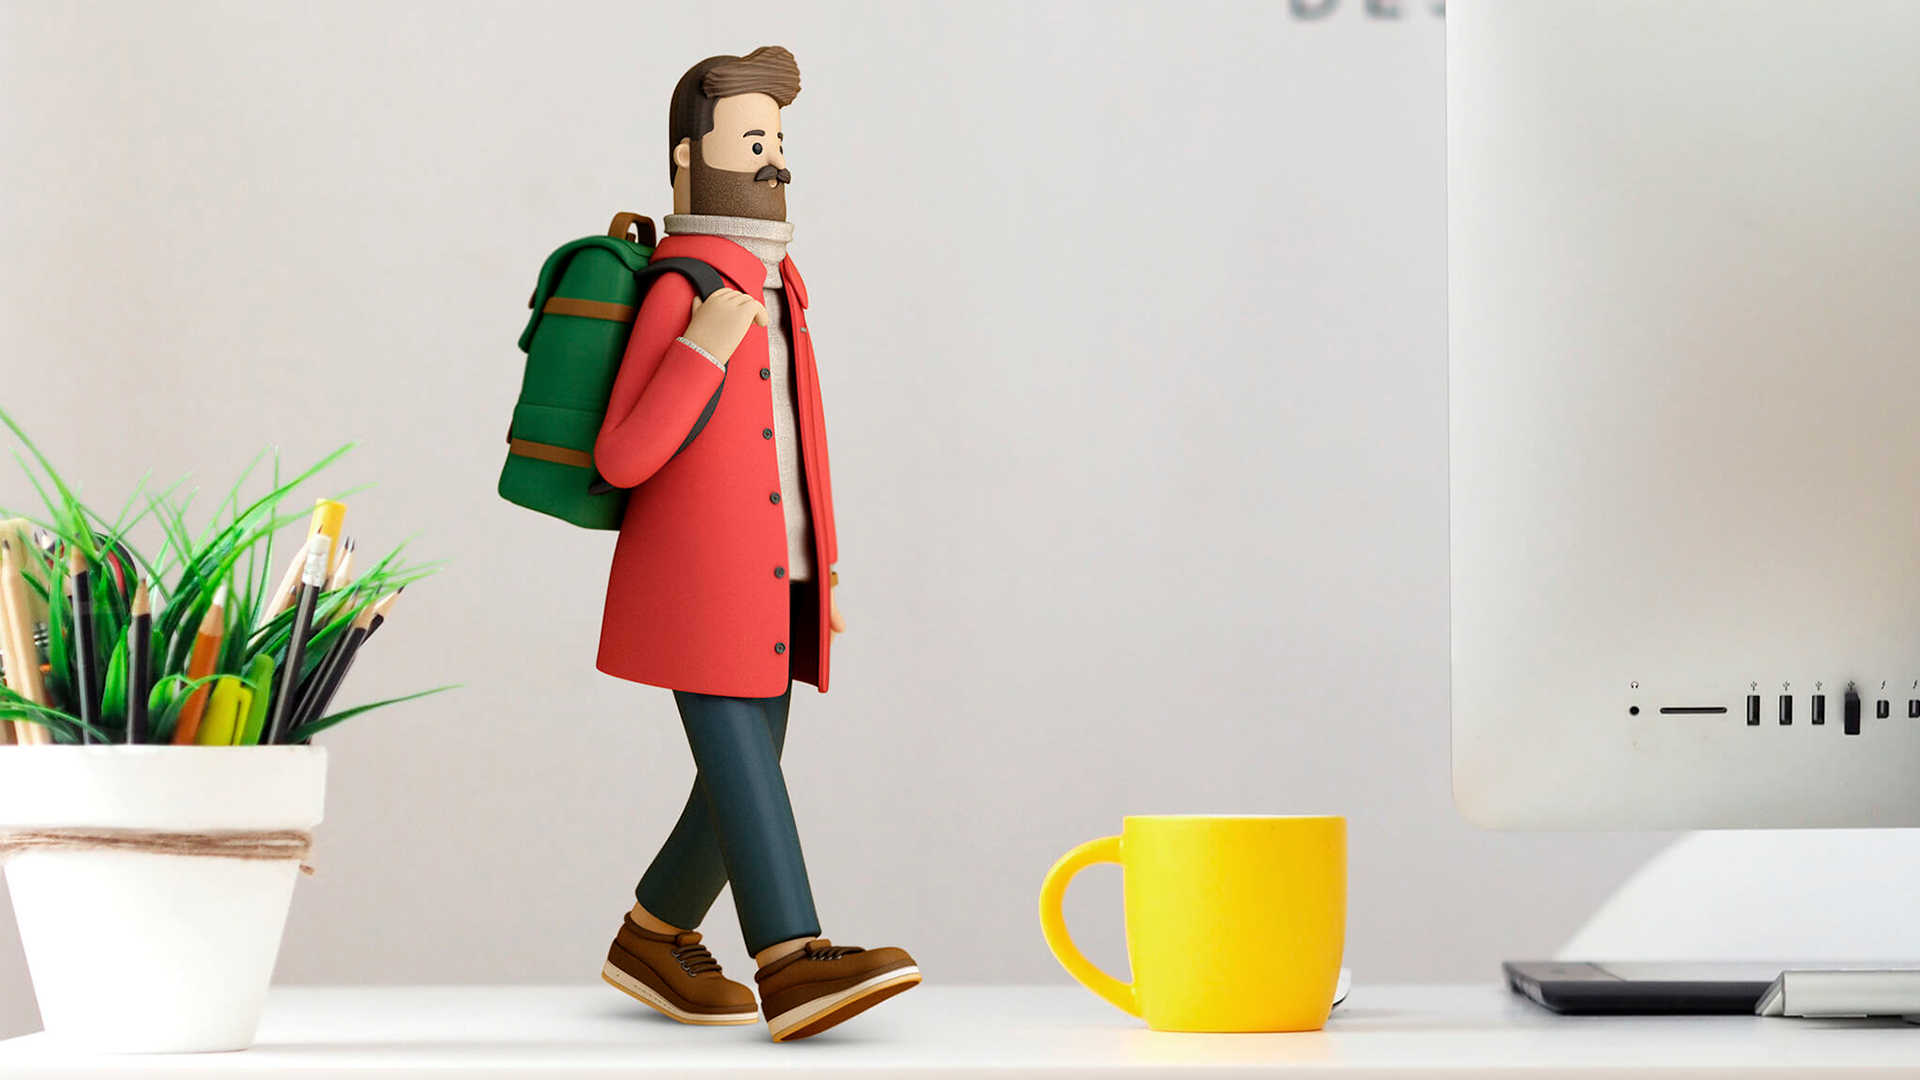 Character Design and Illustration and Graphic Design